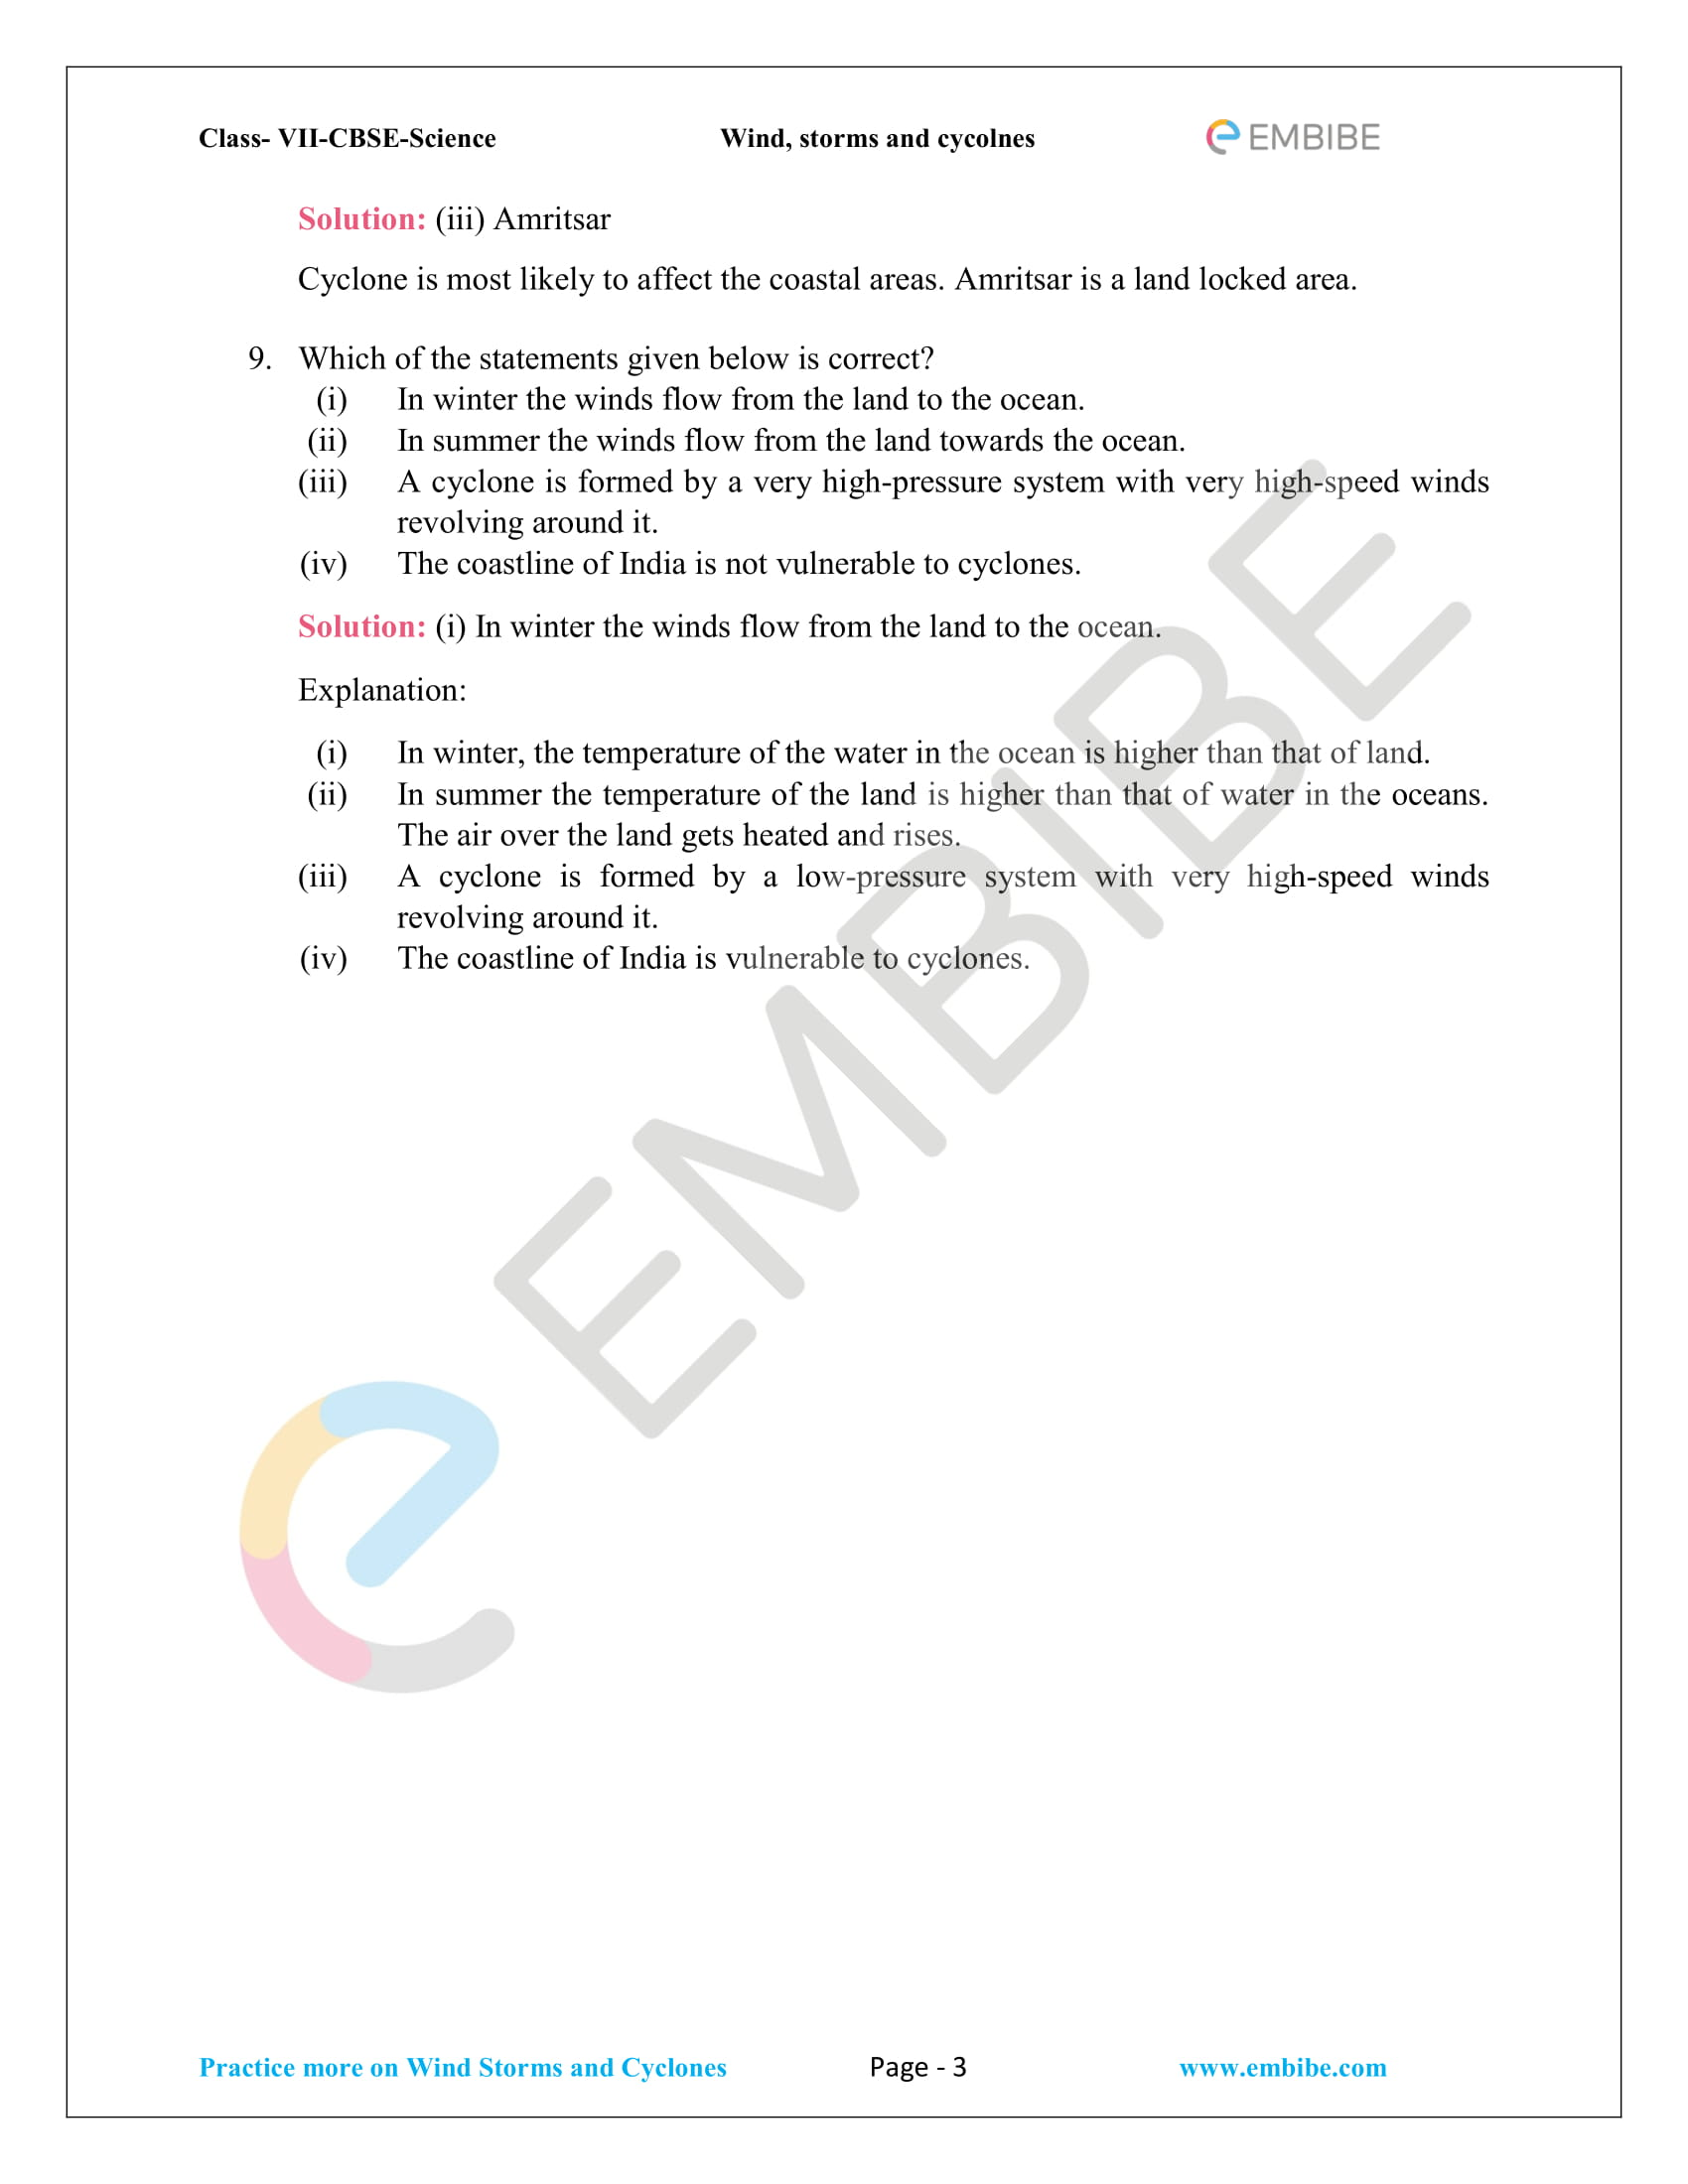 BSE NCERT Solutions For Class 7 Science Chapter 8 - Winds, storms, and cyclones - 3